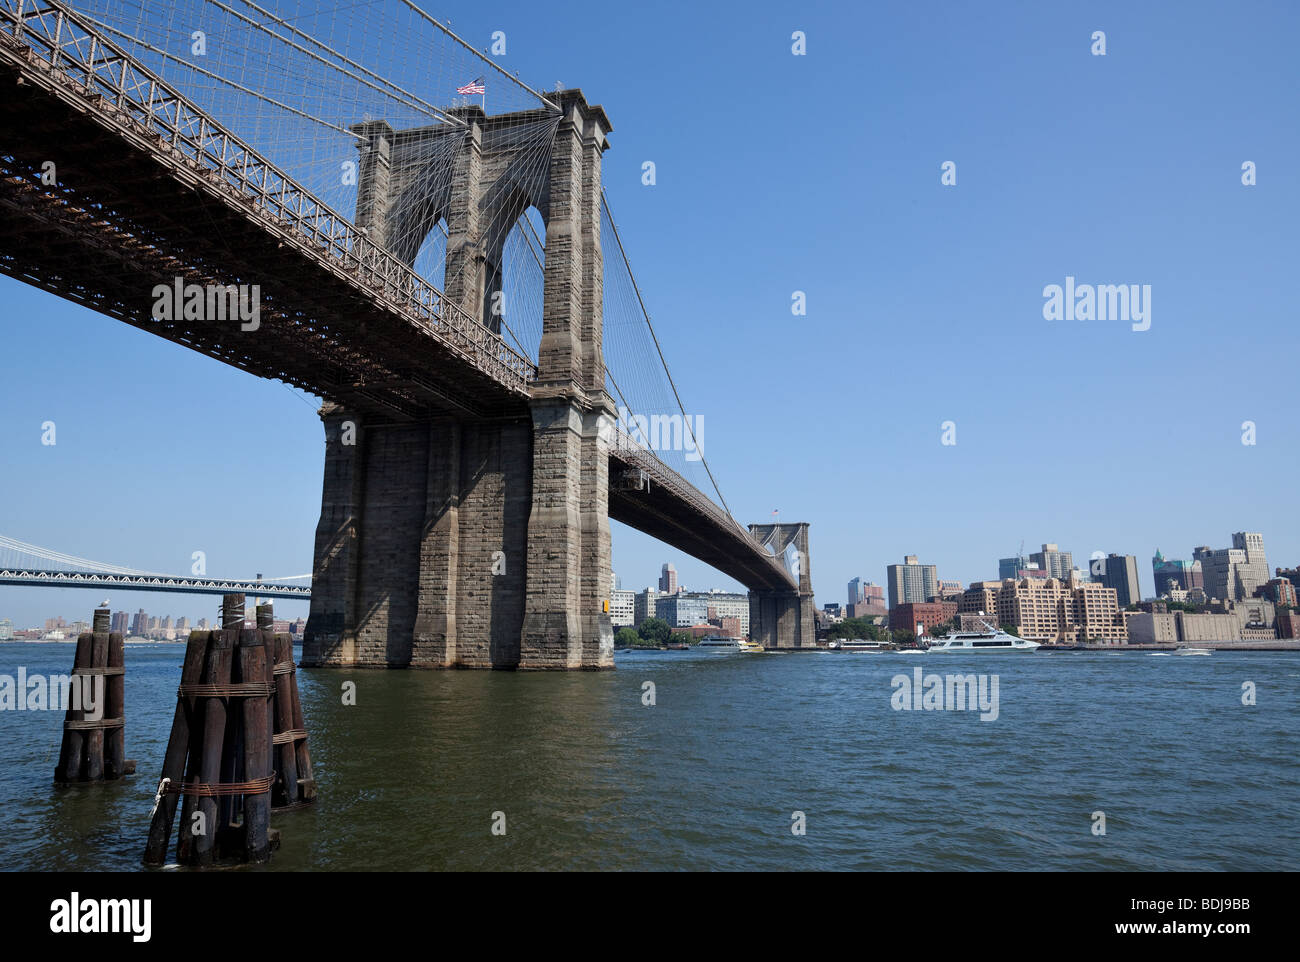 brooklyn bridge over the hudson river new york city usa stock photo 25603407 alamy. Black Bedroom Furniture Sets. Home Design Ideas